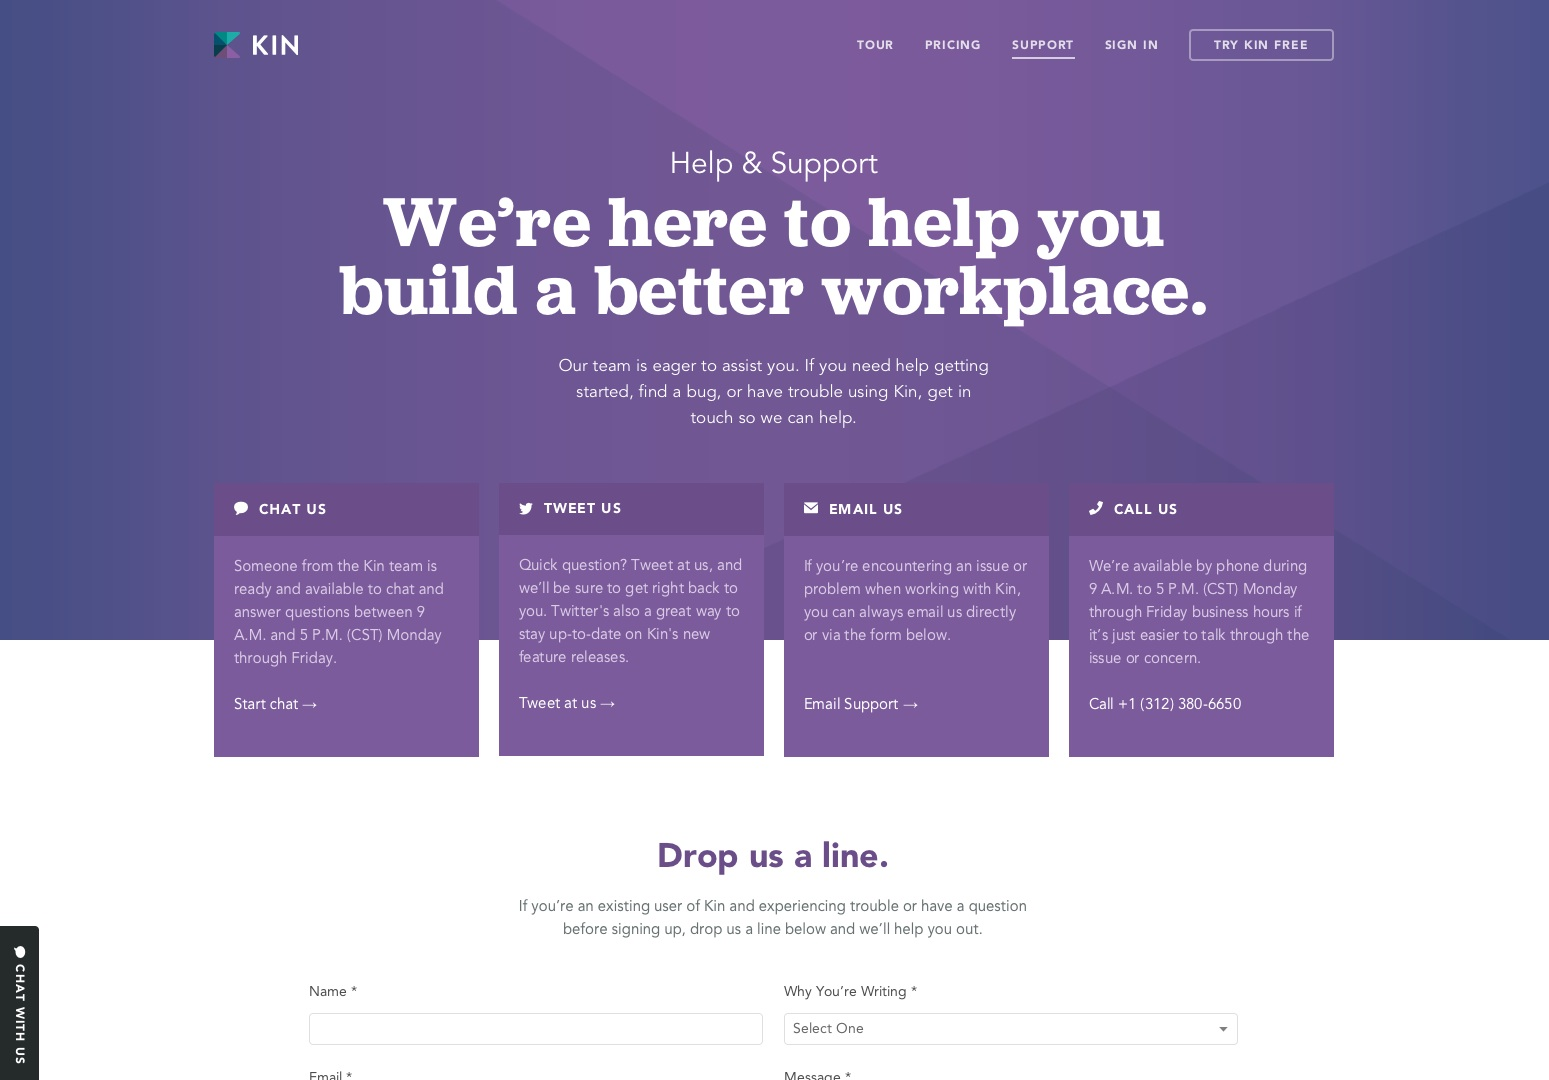 http --- kinhr.com-support- (20131101)